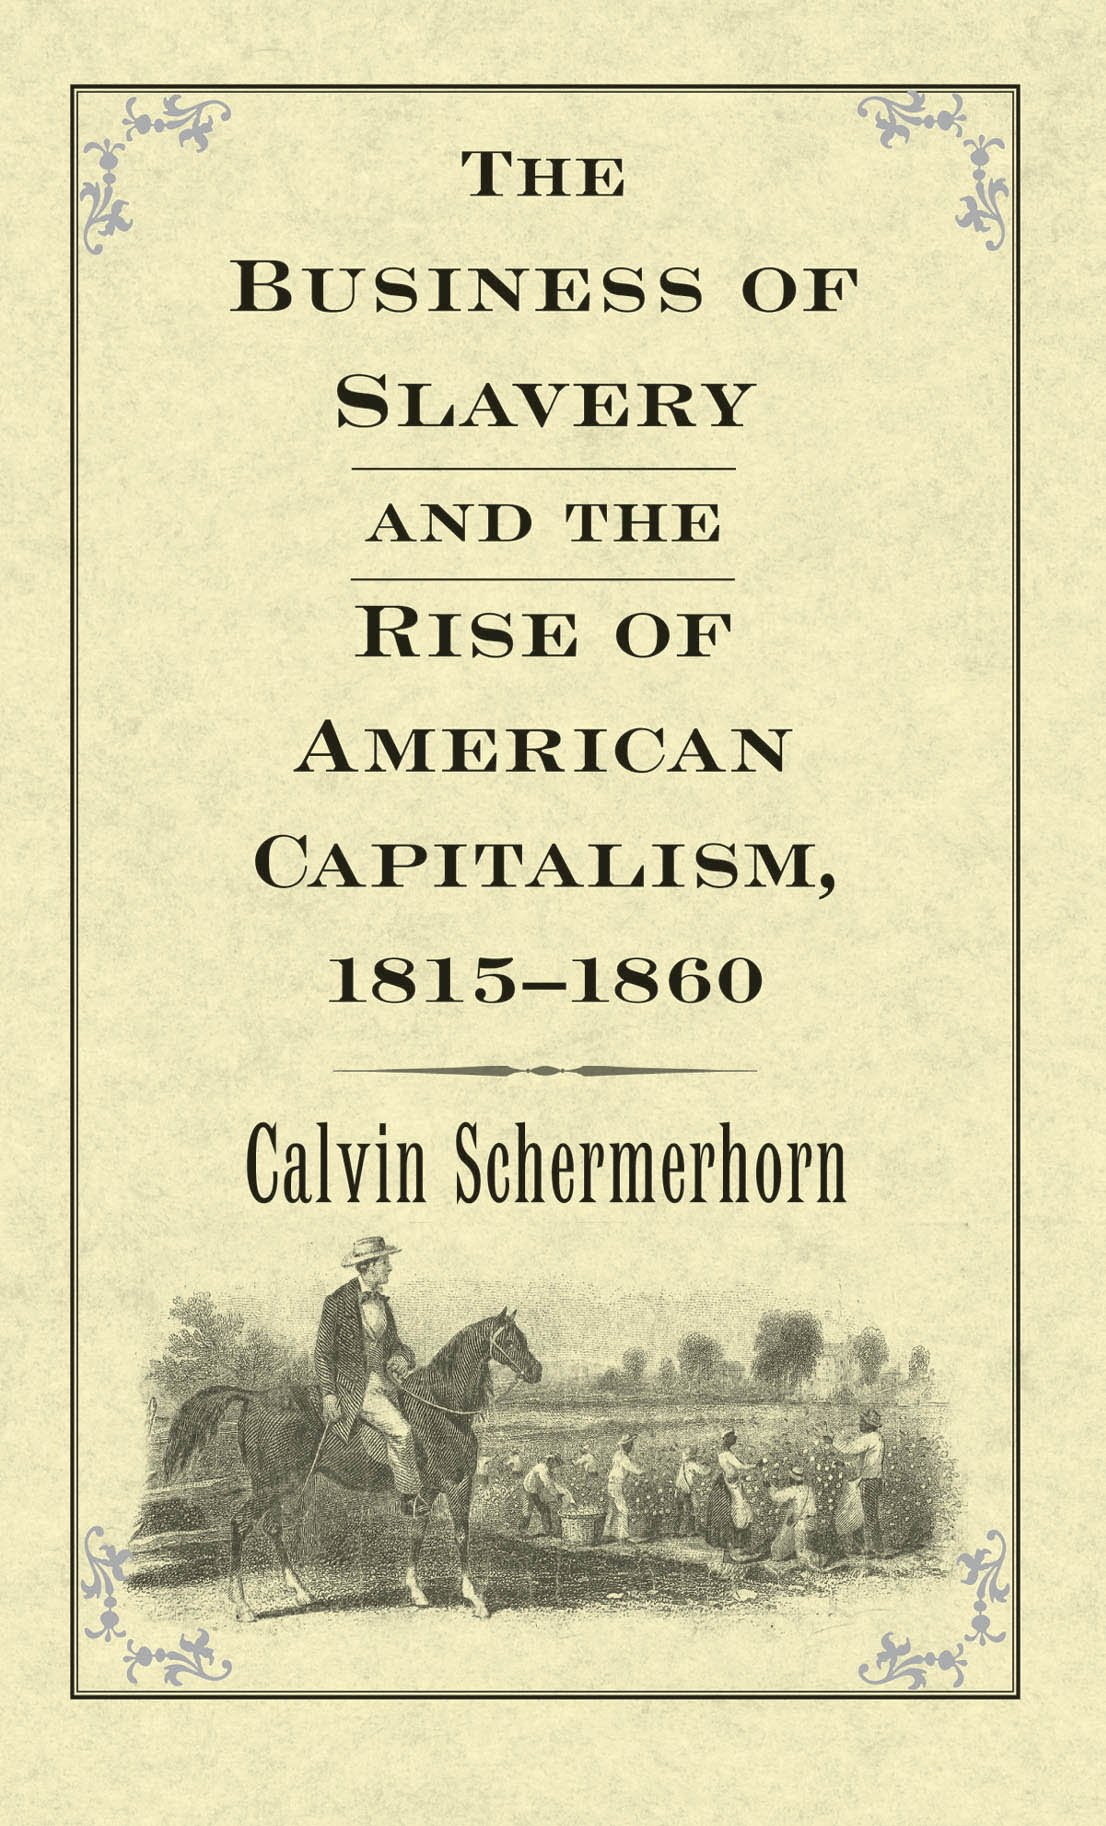 The Business of Slavery and the Rise of American Capitalism, 1815–1860